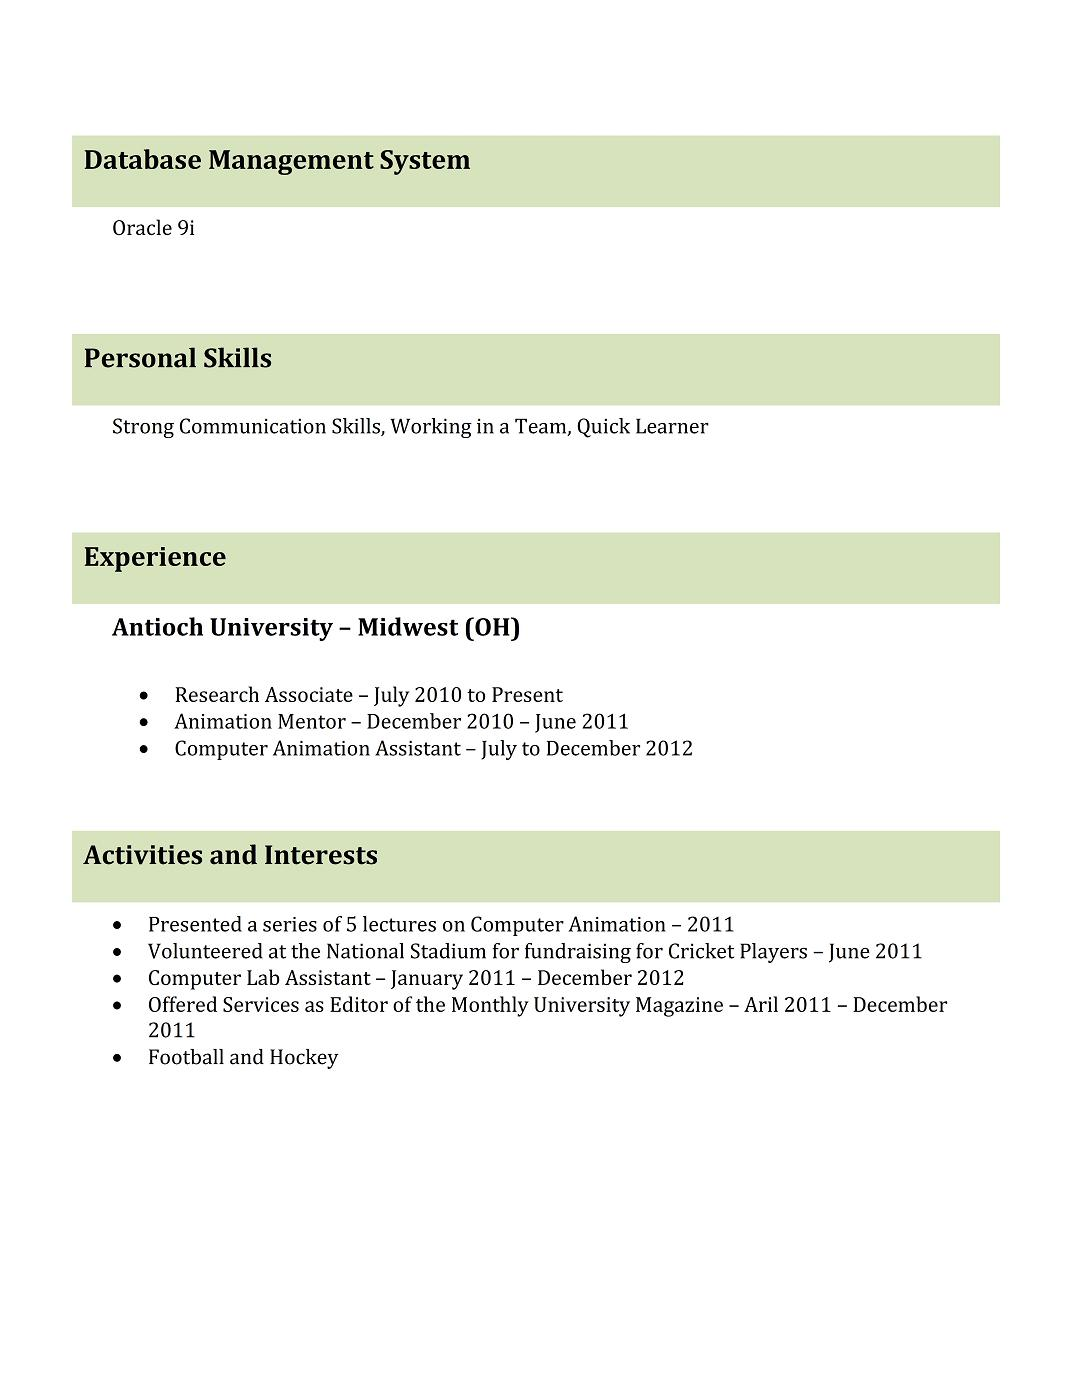 best different types of resumes formats sample best if you re writing resume format and you re a fresher or an entry level how do you write your resume this is one of the most fundamentals you have to learn